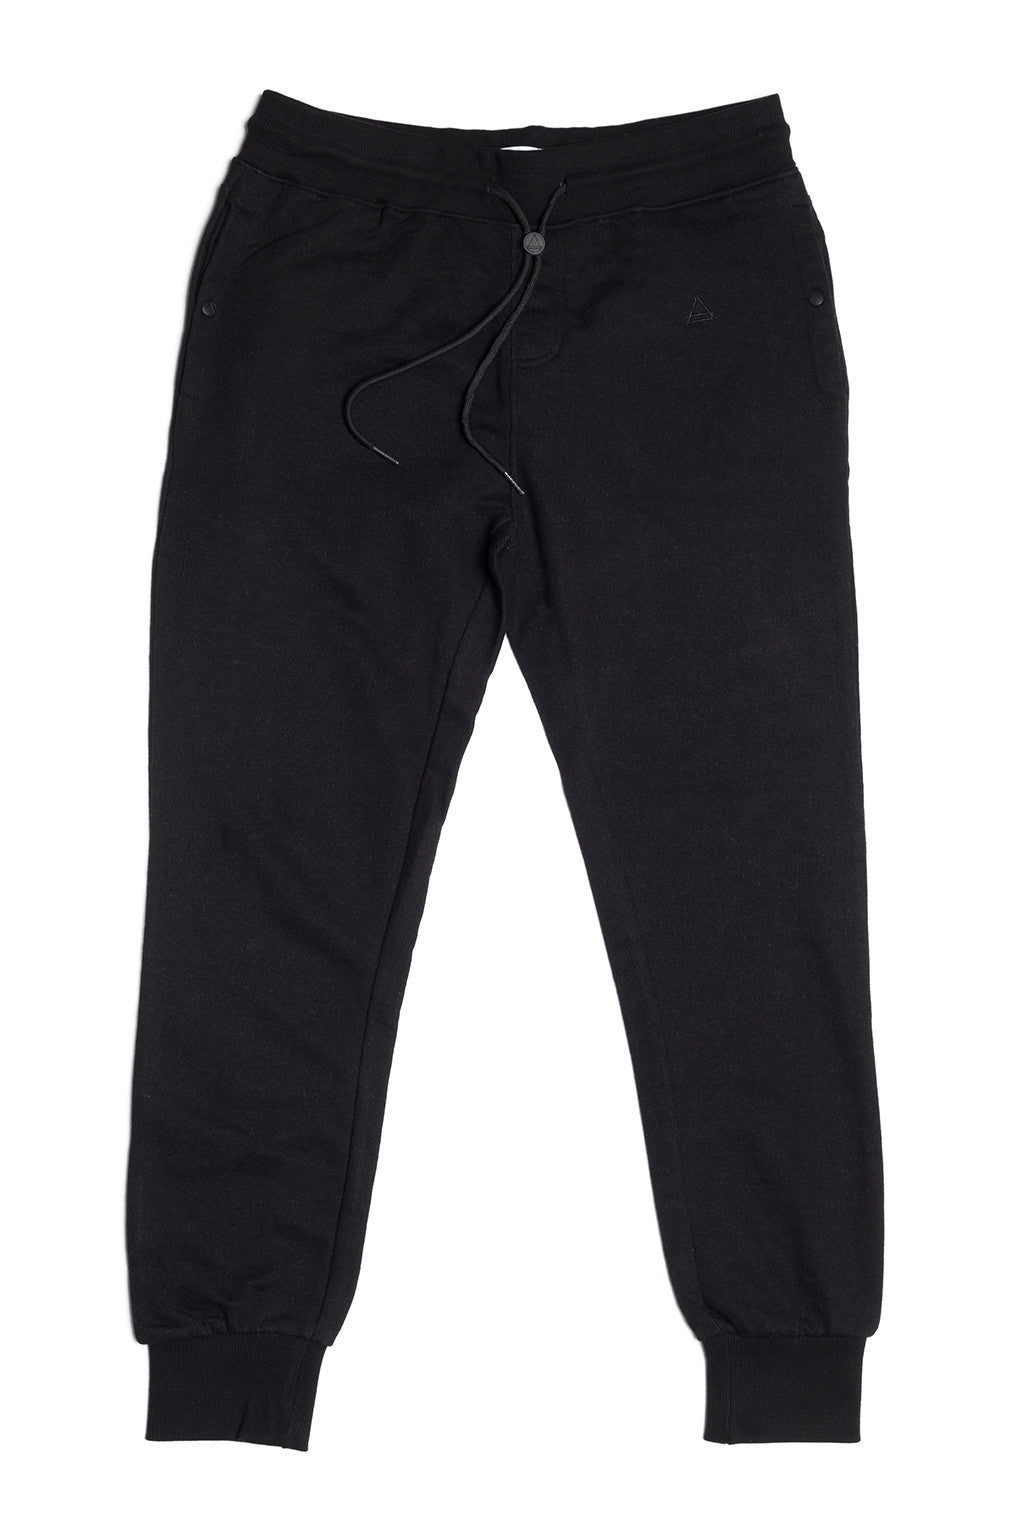 Sum Billy M Sweat Pants - Eleven Paris - Bottoms - TOPGEARNY